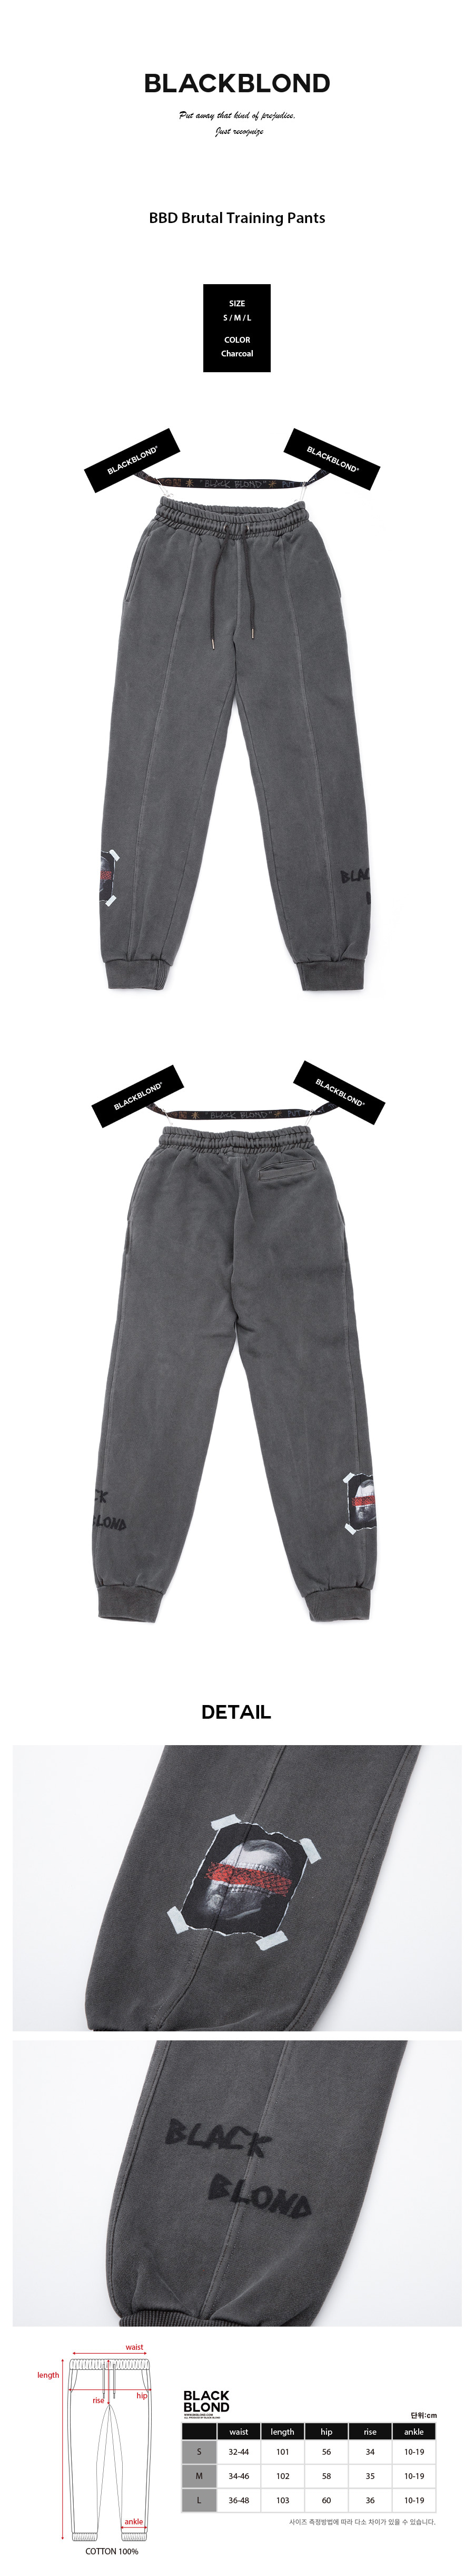 BBD-Brutal-Training-Pants-%28Charcoal%29.jpg